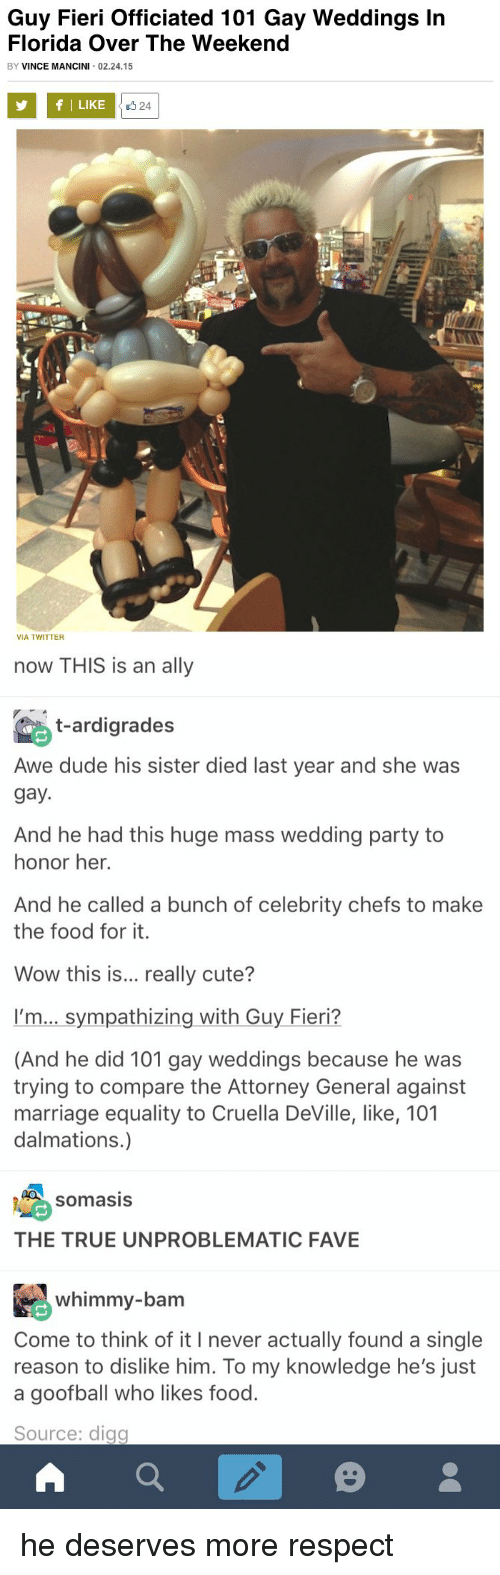 Cute, Dude, and Food: Guy Fieri officiated 101 Gay Weddings In  Florida Over The Weekend  BY  VINCE MANCINI 02.24.15  f I LIKE  24  VIA TWITTER   now THIS is an ally  t-ardigrades  Awe dude his sister died last year and she was  gay.  And he had this huge mass wedding party to  honor her.  And he called a bunch of celebrity chefs to make  the food for it.  Wow this is  really cute?  I'm... sympathizing with Guy Fieri?  (And he did 101 gay weddings because he was  trying to compare the Attorney General against  marriage equality to Cruella Deville, like, 101  dalmations.)  SomasIS  THE TRUE UN PROBLEMATIC FAVE  whimmy-bam  Come to think of it I never actually found a single  reason to dislike him. To my knowledge he's just  a goofball who likes food.  Source: digg  a he deserves more respect